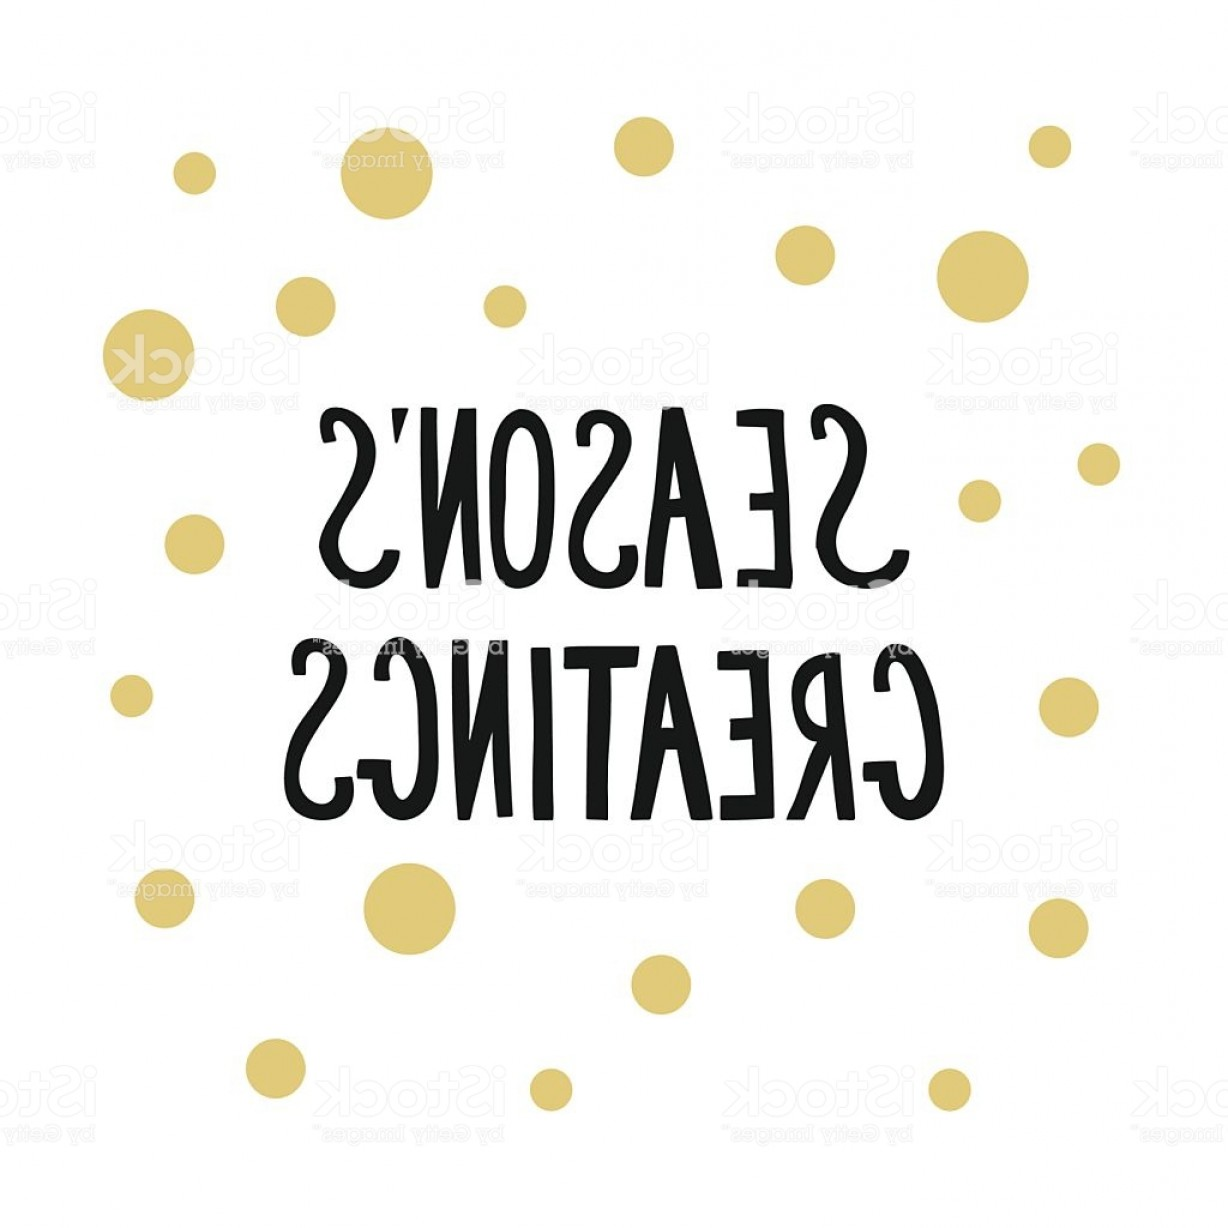 Season S Greetings Vector Free: Calligraphic Phrase Seasons Greetings With Golden Dots For Card Gm